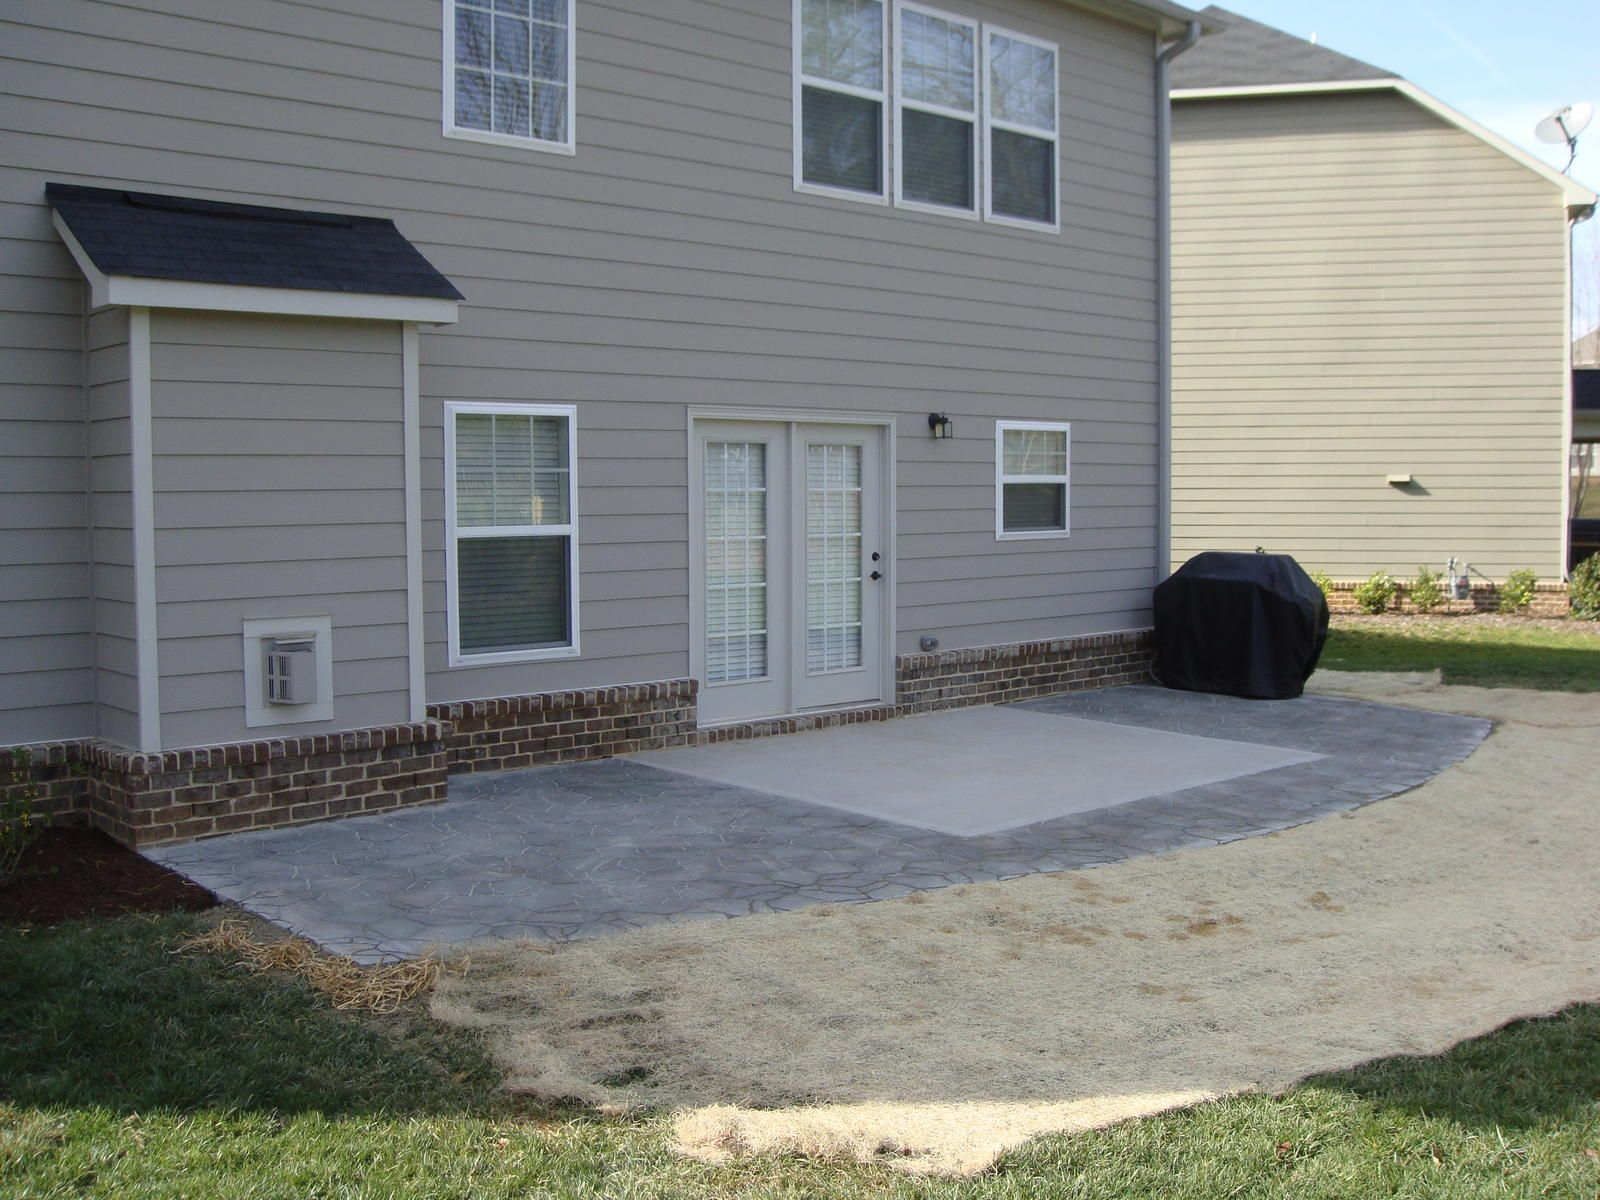 Prepossessing Extend Patio Deck Painting Backyard Or Other ... on Backyard Patio Extension id=20784